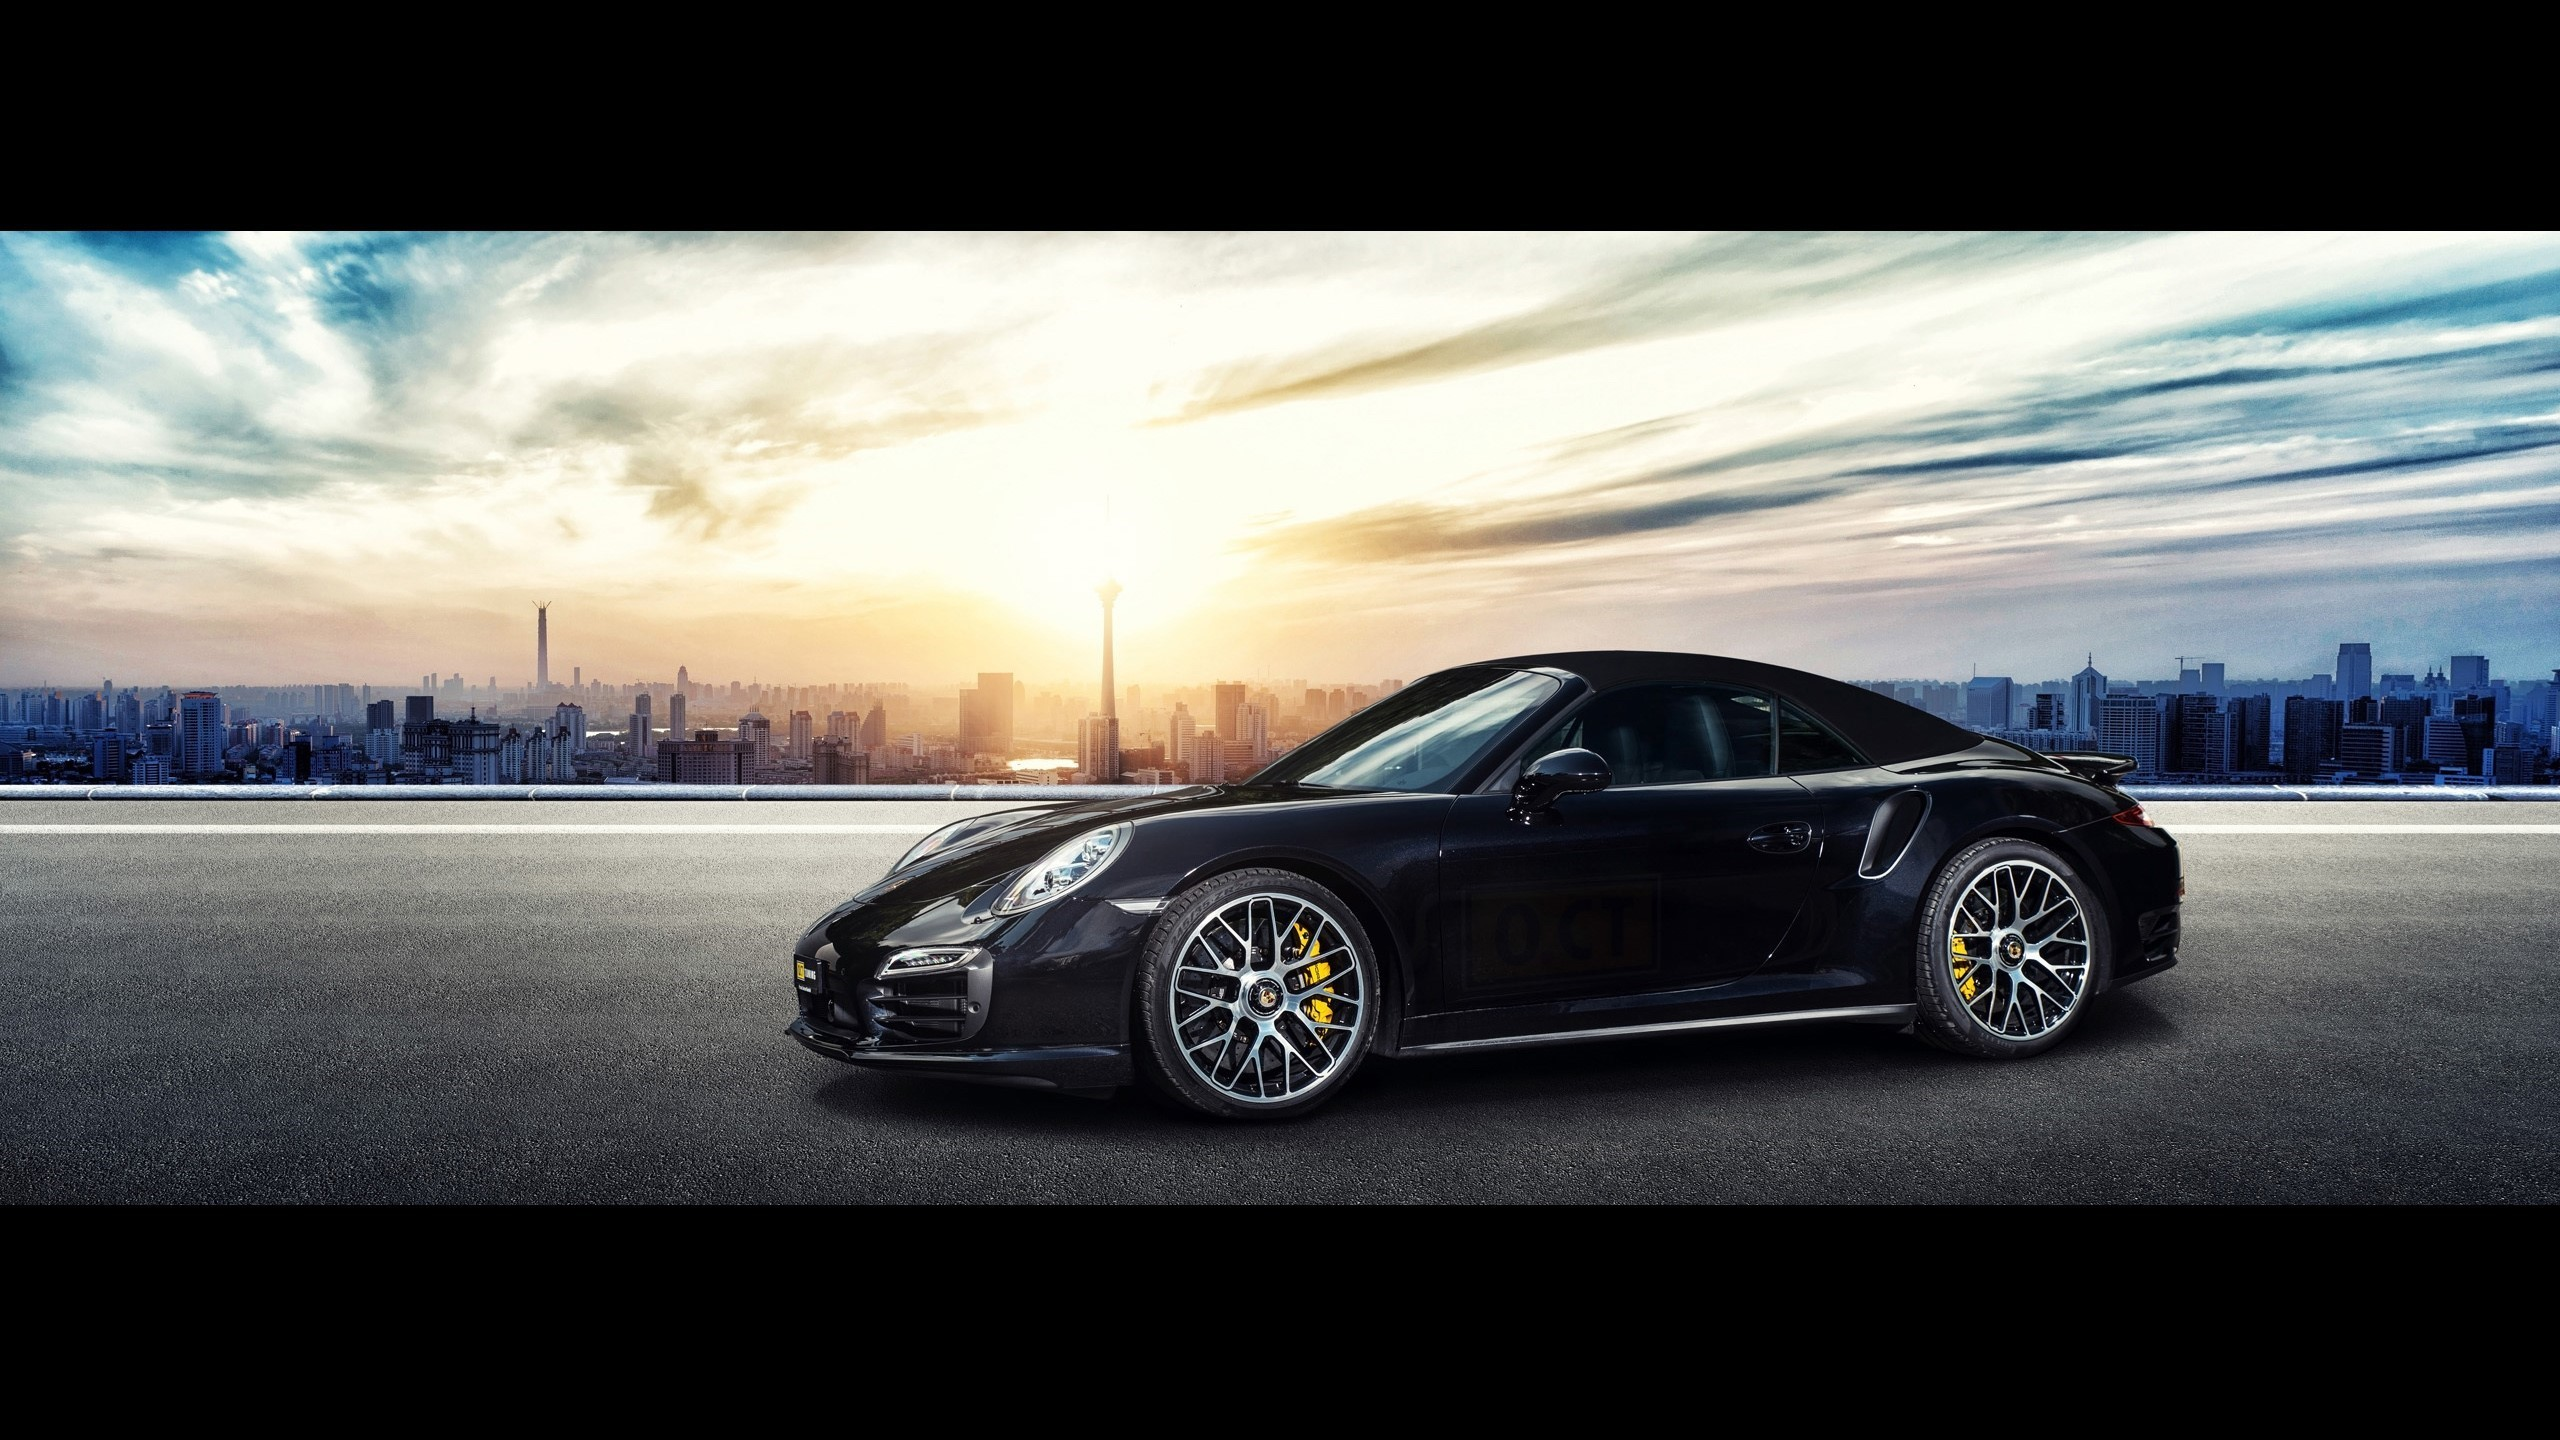 Porsche 911 Turbo 4K Wallpapers